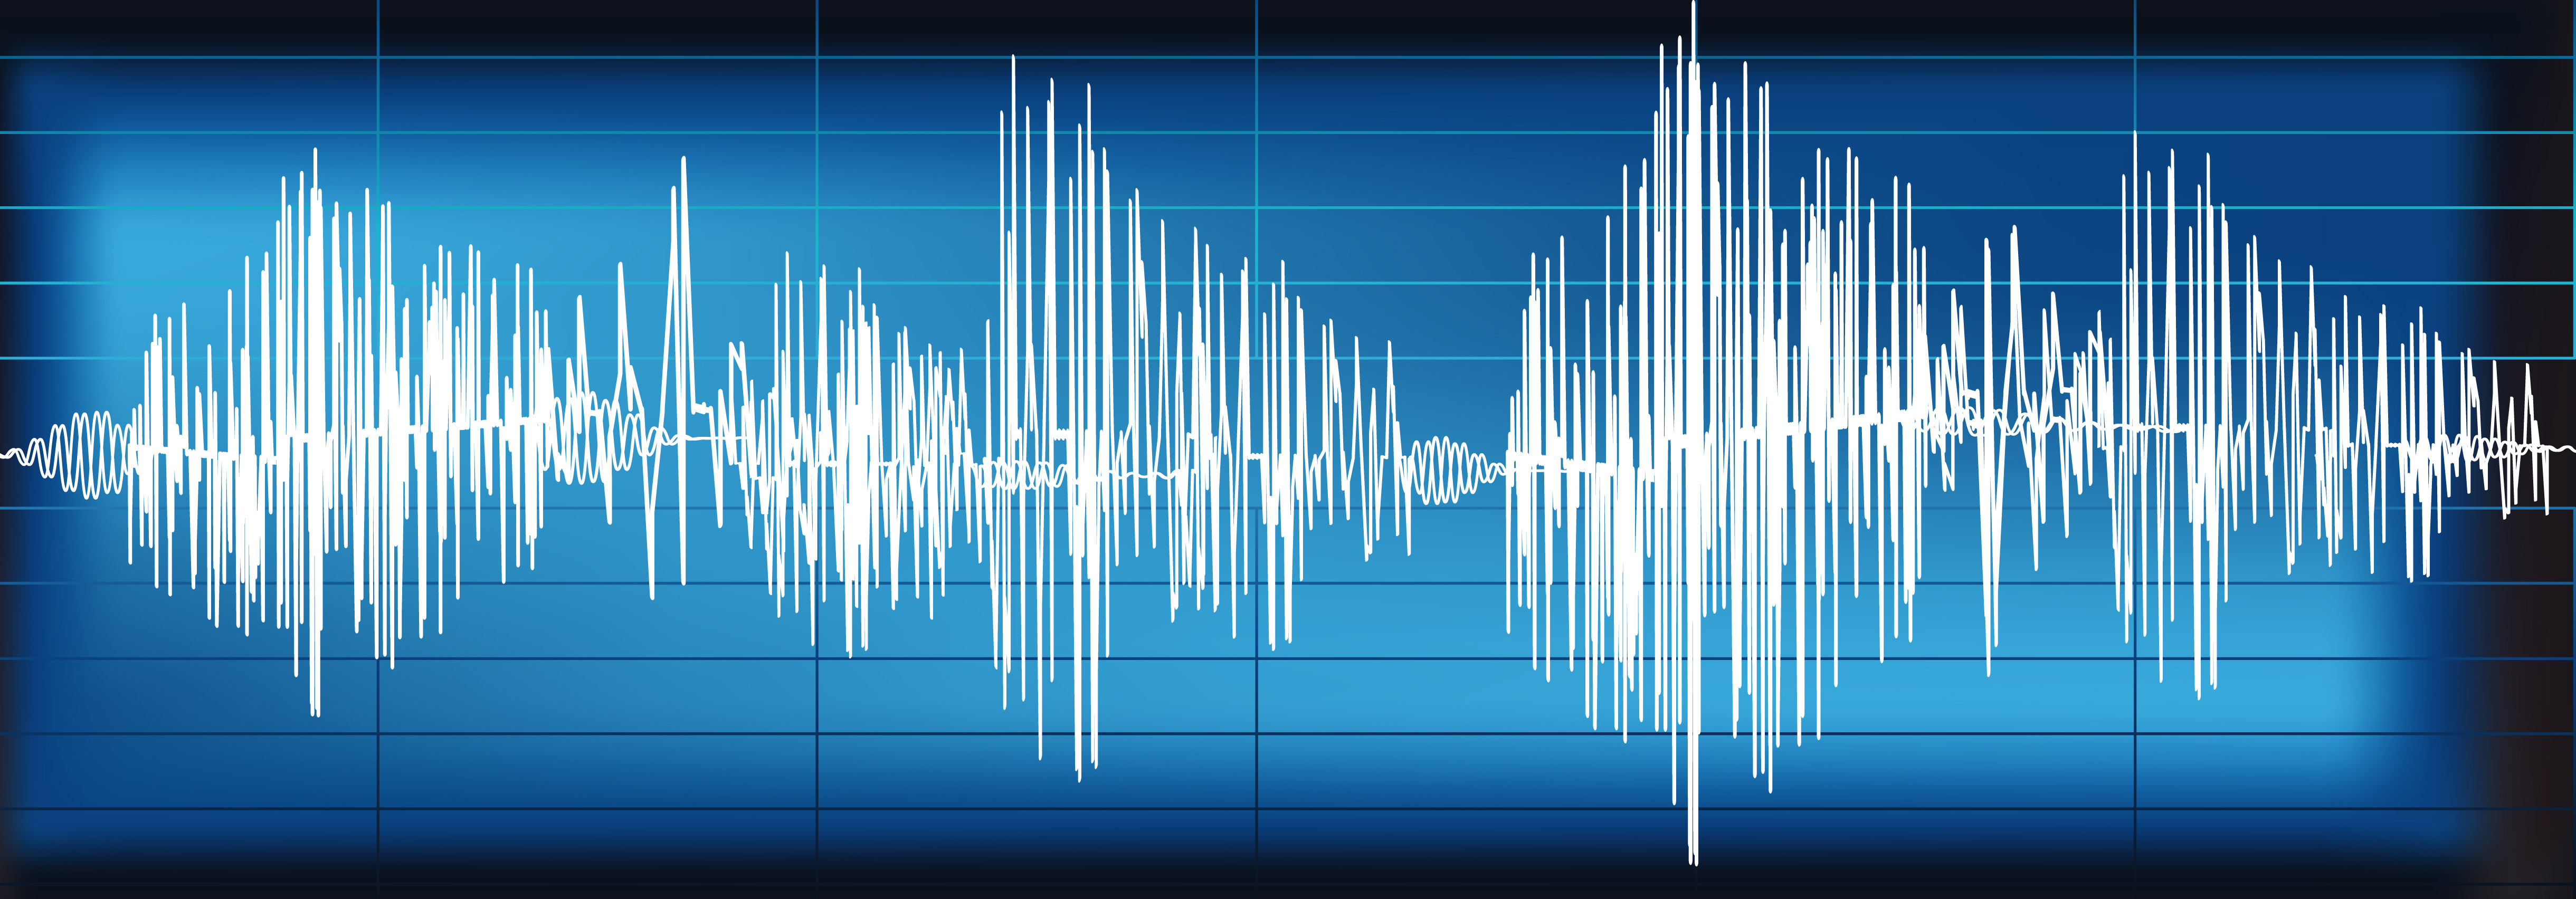 A wave length from a persons voice